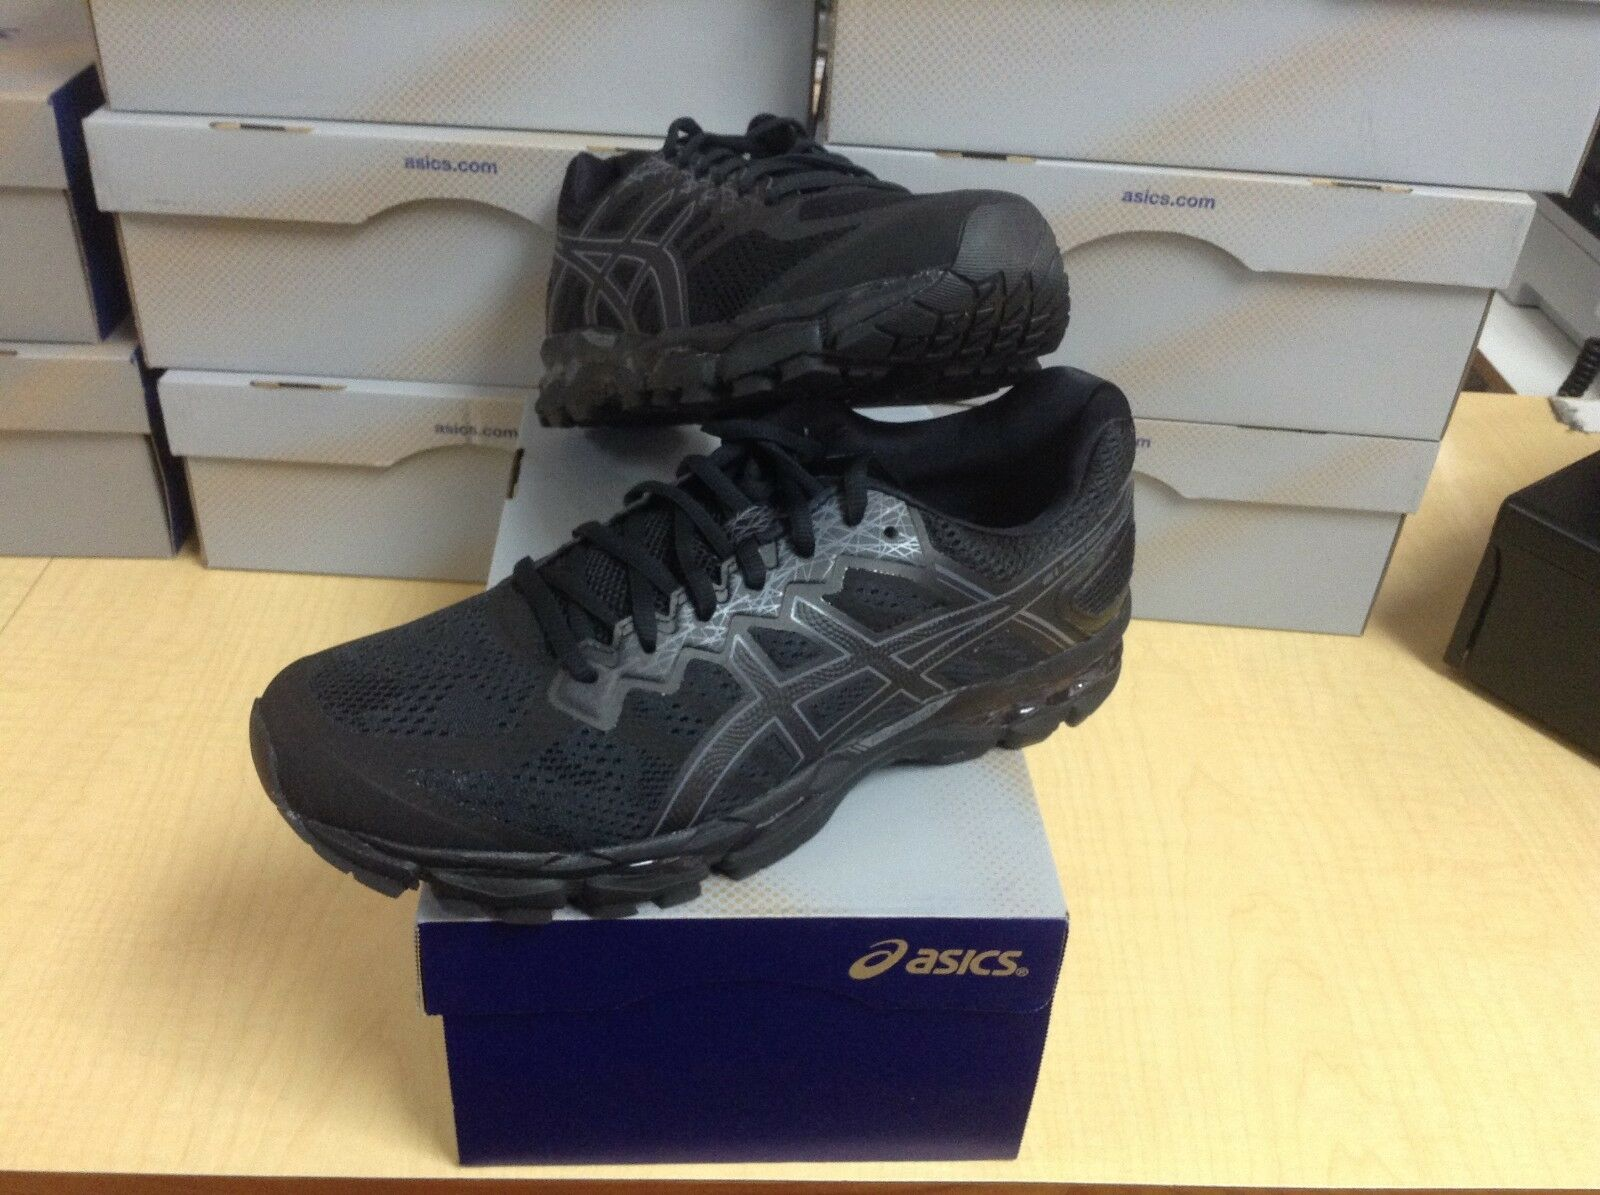 Hombres Asics - gel-superion 40% (t7h2n-9090) - talla 9,5 - 40% gel-superion OFF 8dc7ad